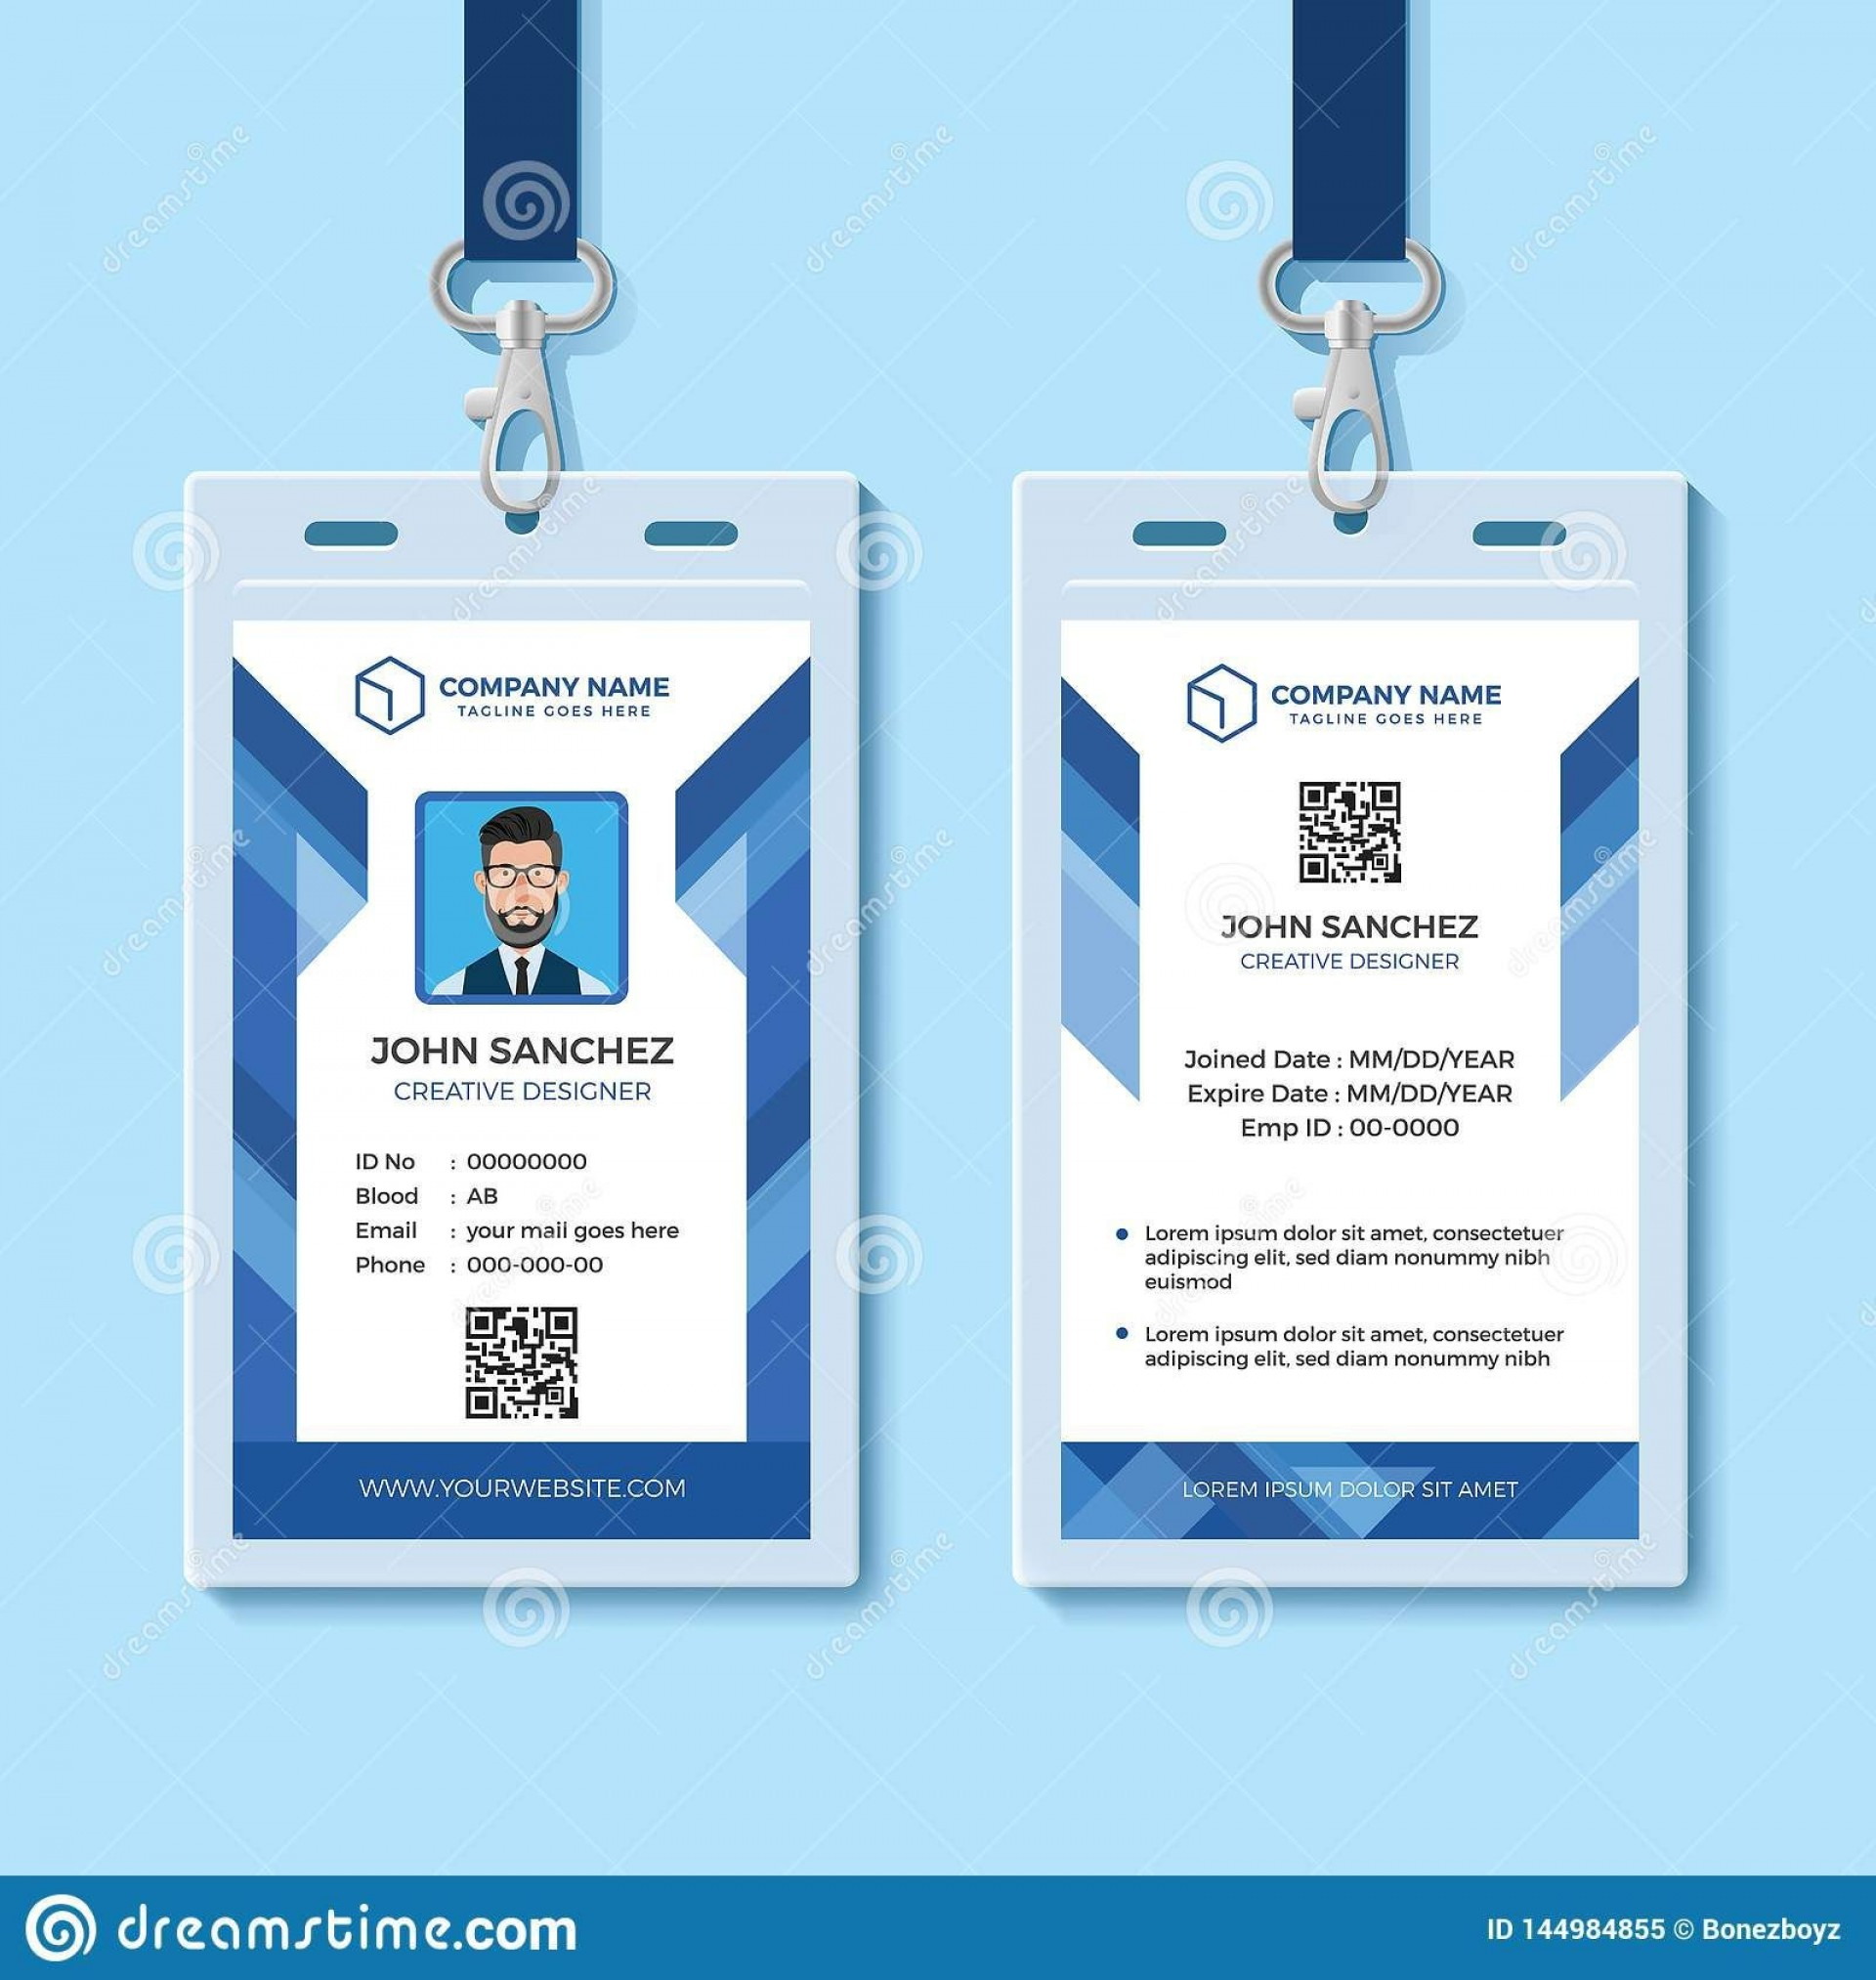 000 Fantastic Employee Id Badge Template Photo  Avery Card Free Download Word1920